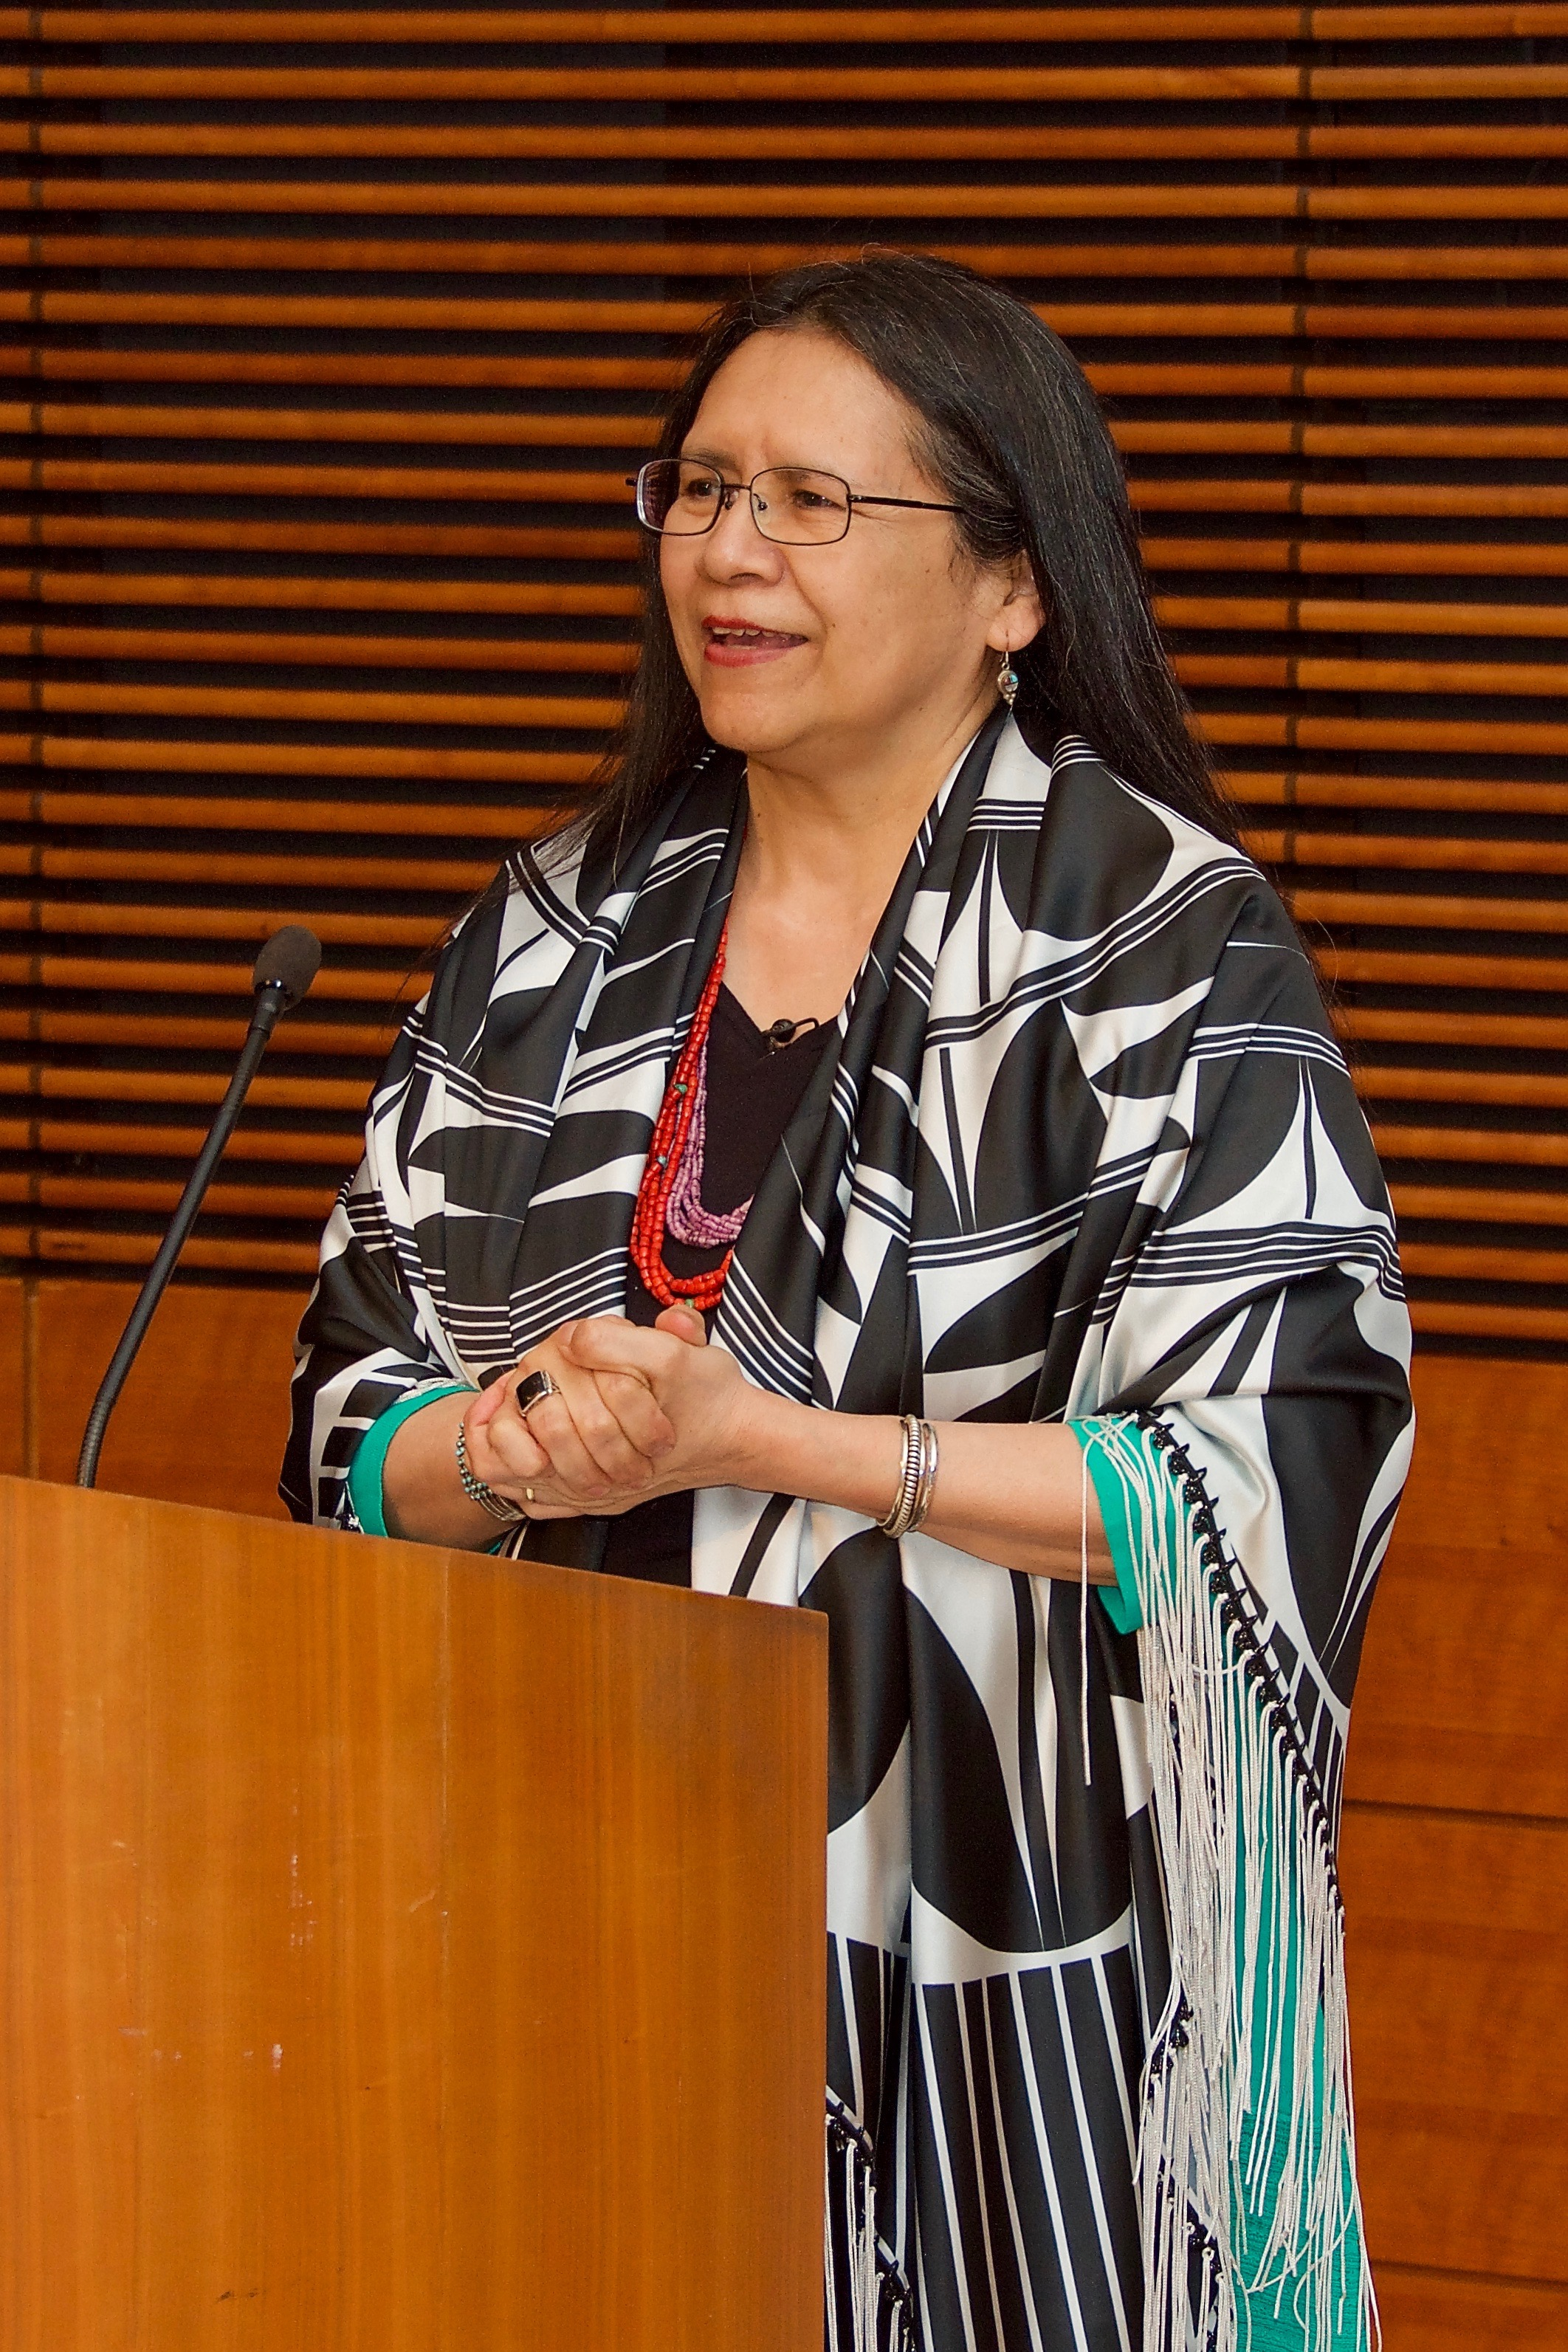 Debbie Reese at Arbuthnot Lecture. By Durango Mendoza, 2019